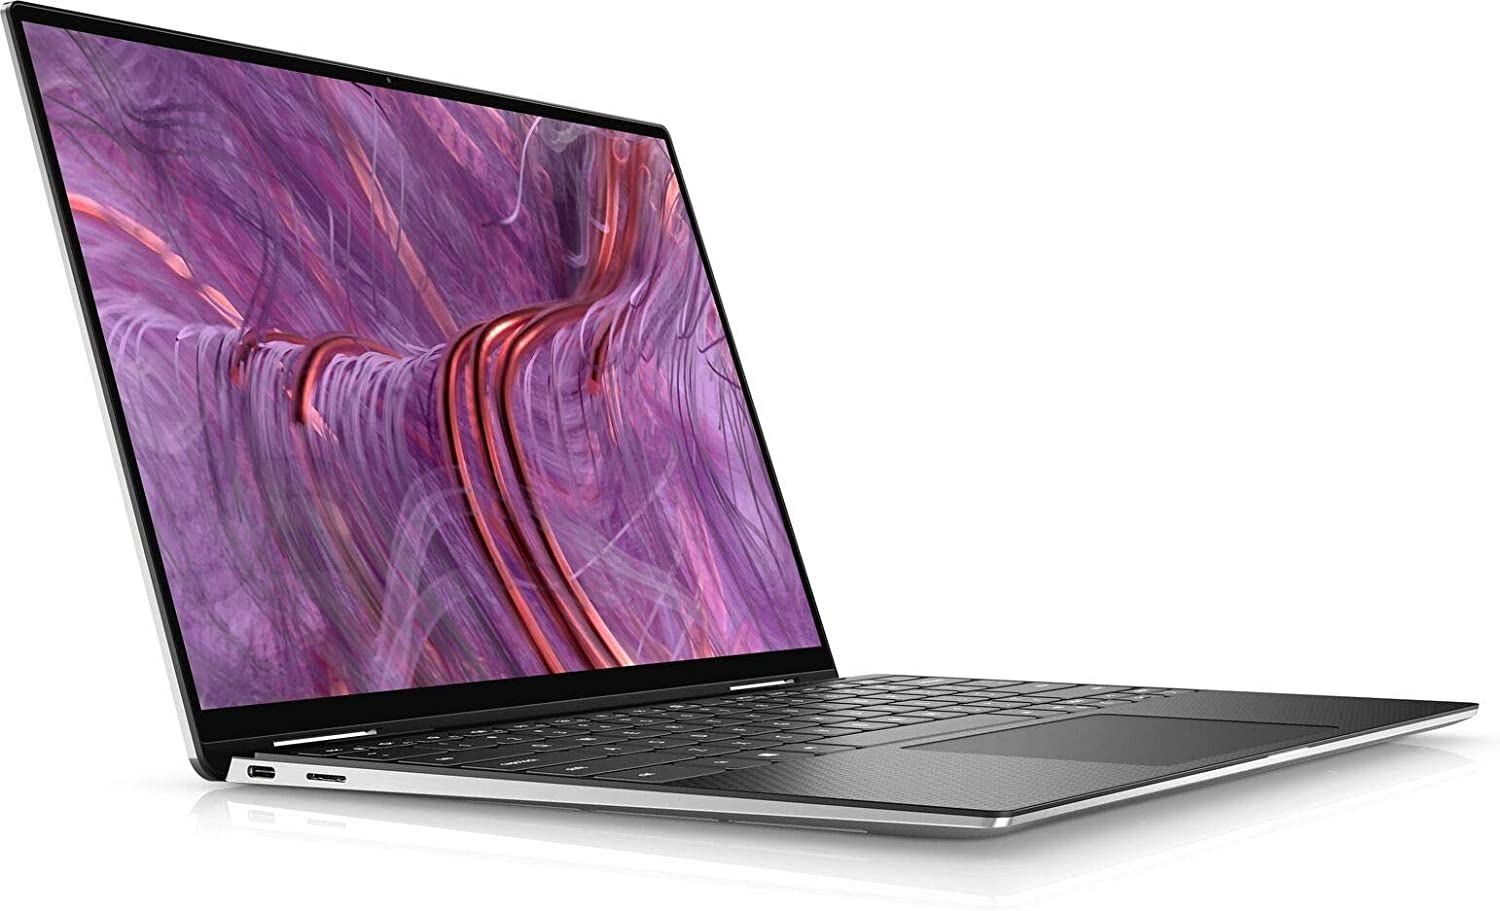 Dell XPS 13 9310 2-in-1 Laptop, 13.4